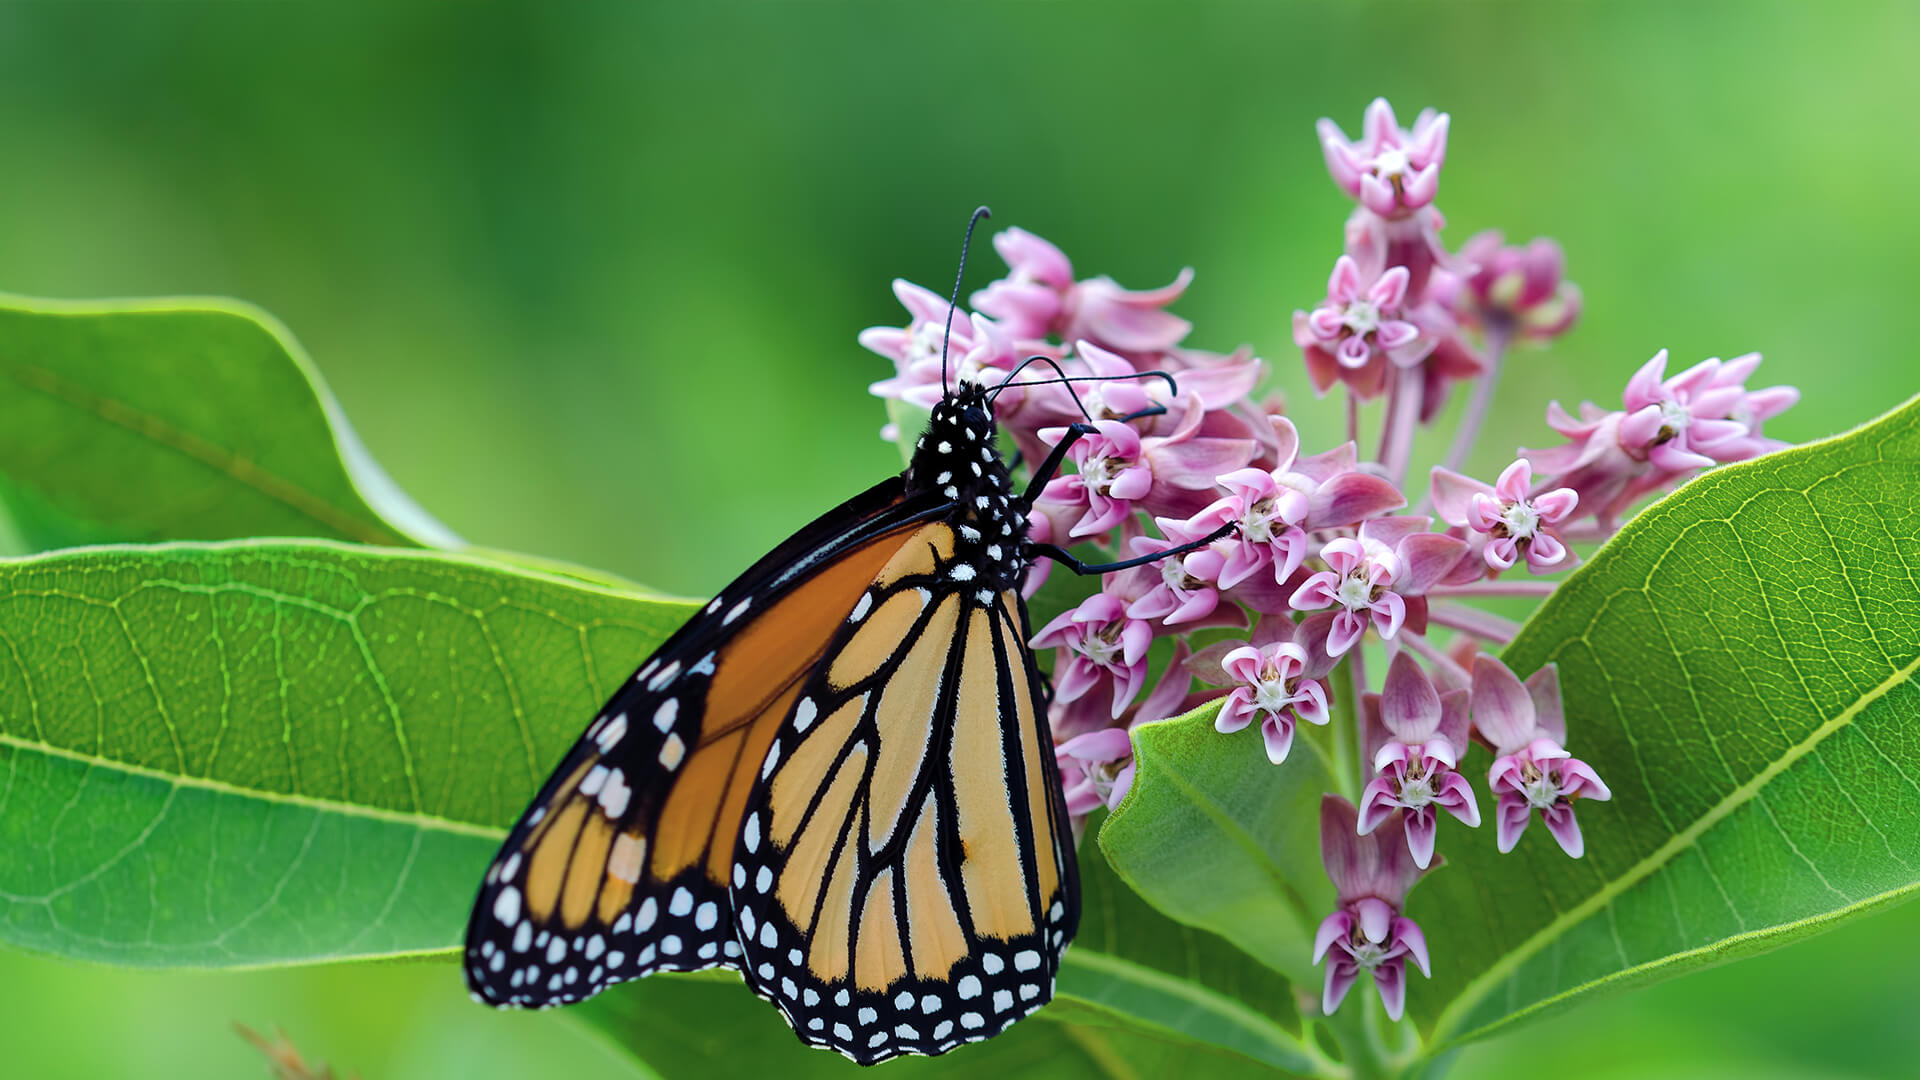 Monarch butterfly drinking nectar from milkweed flowers.